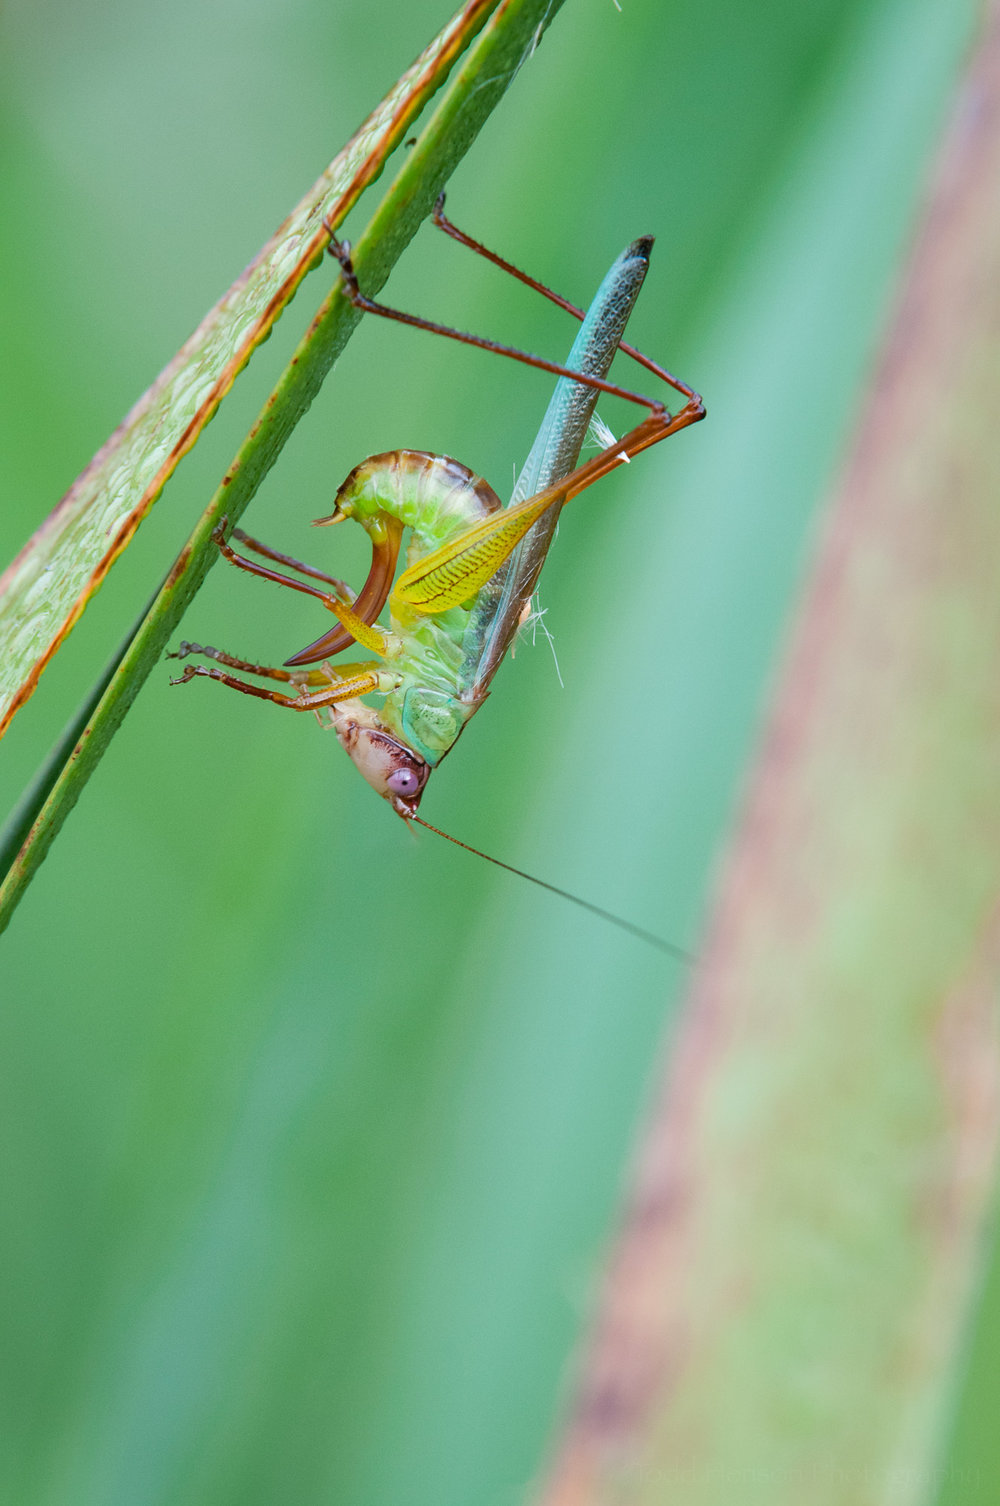 Fifth of a sequence of a katydid cleaning itself.